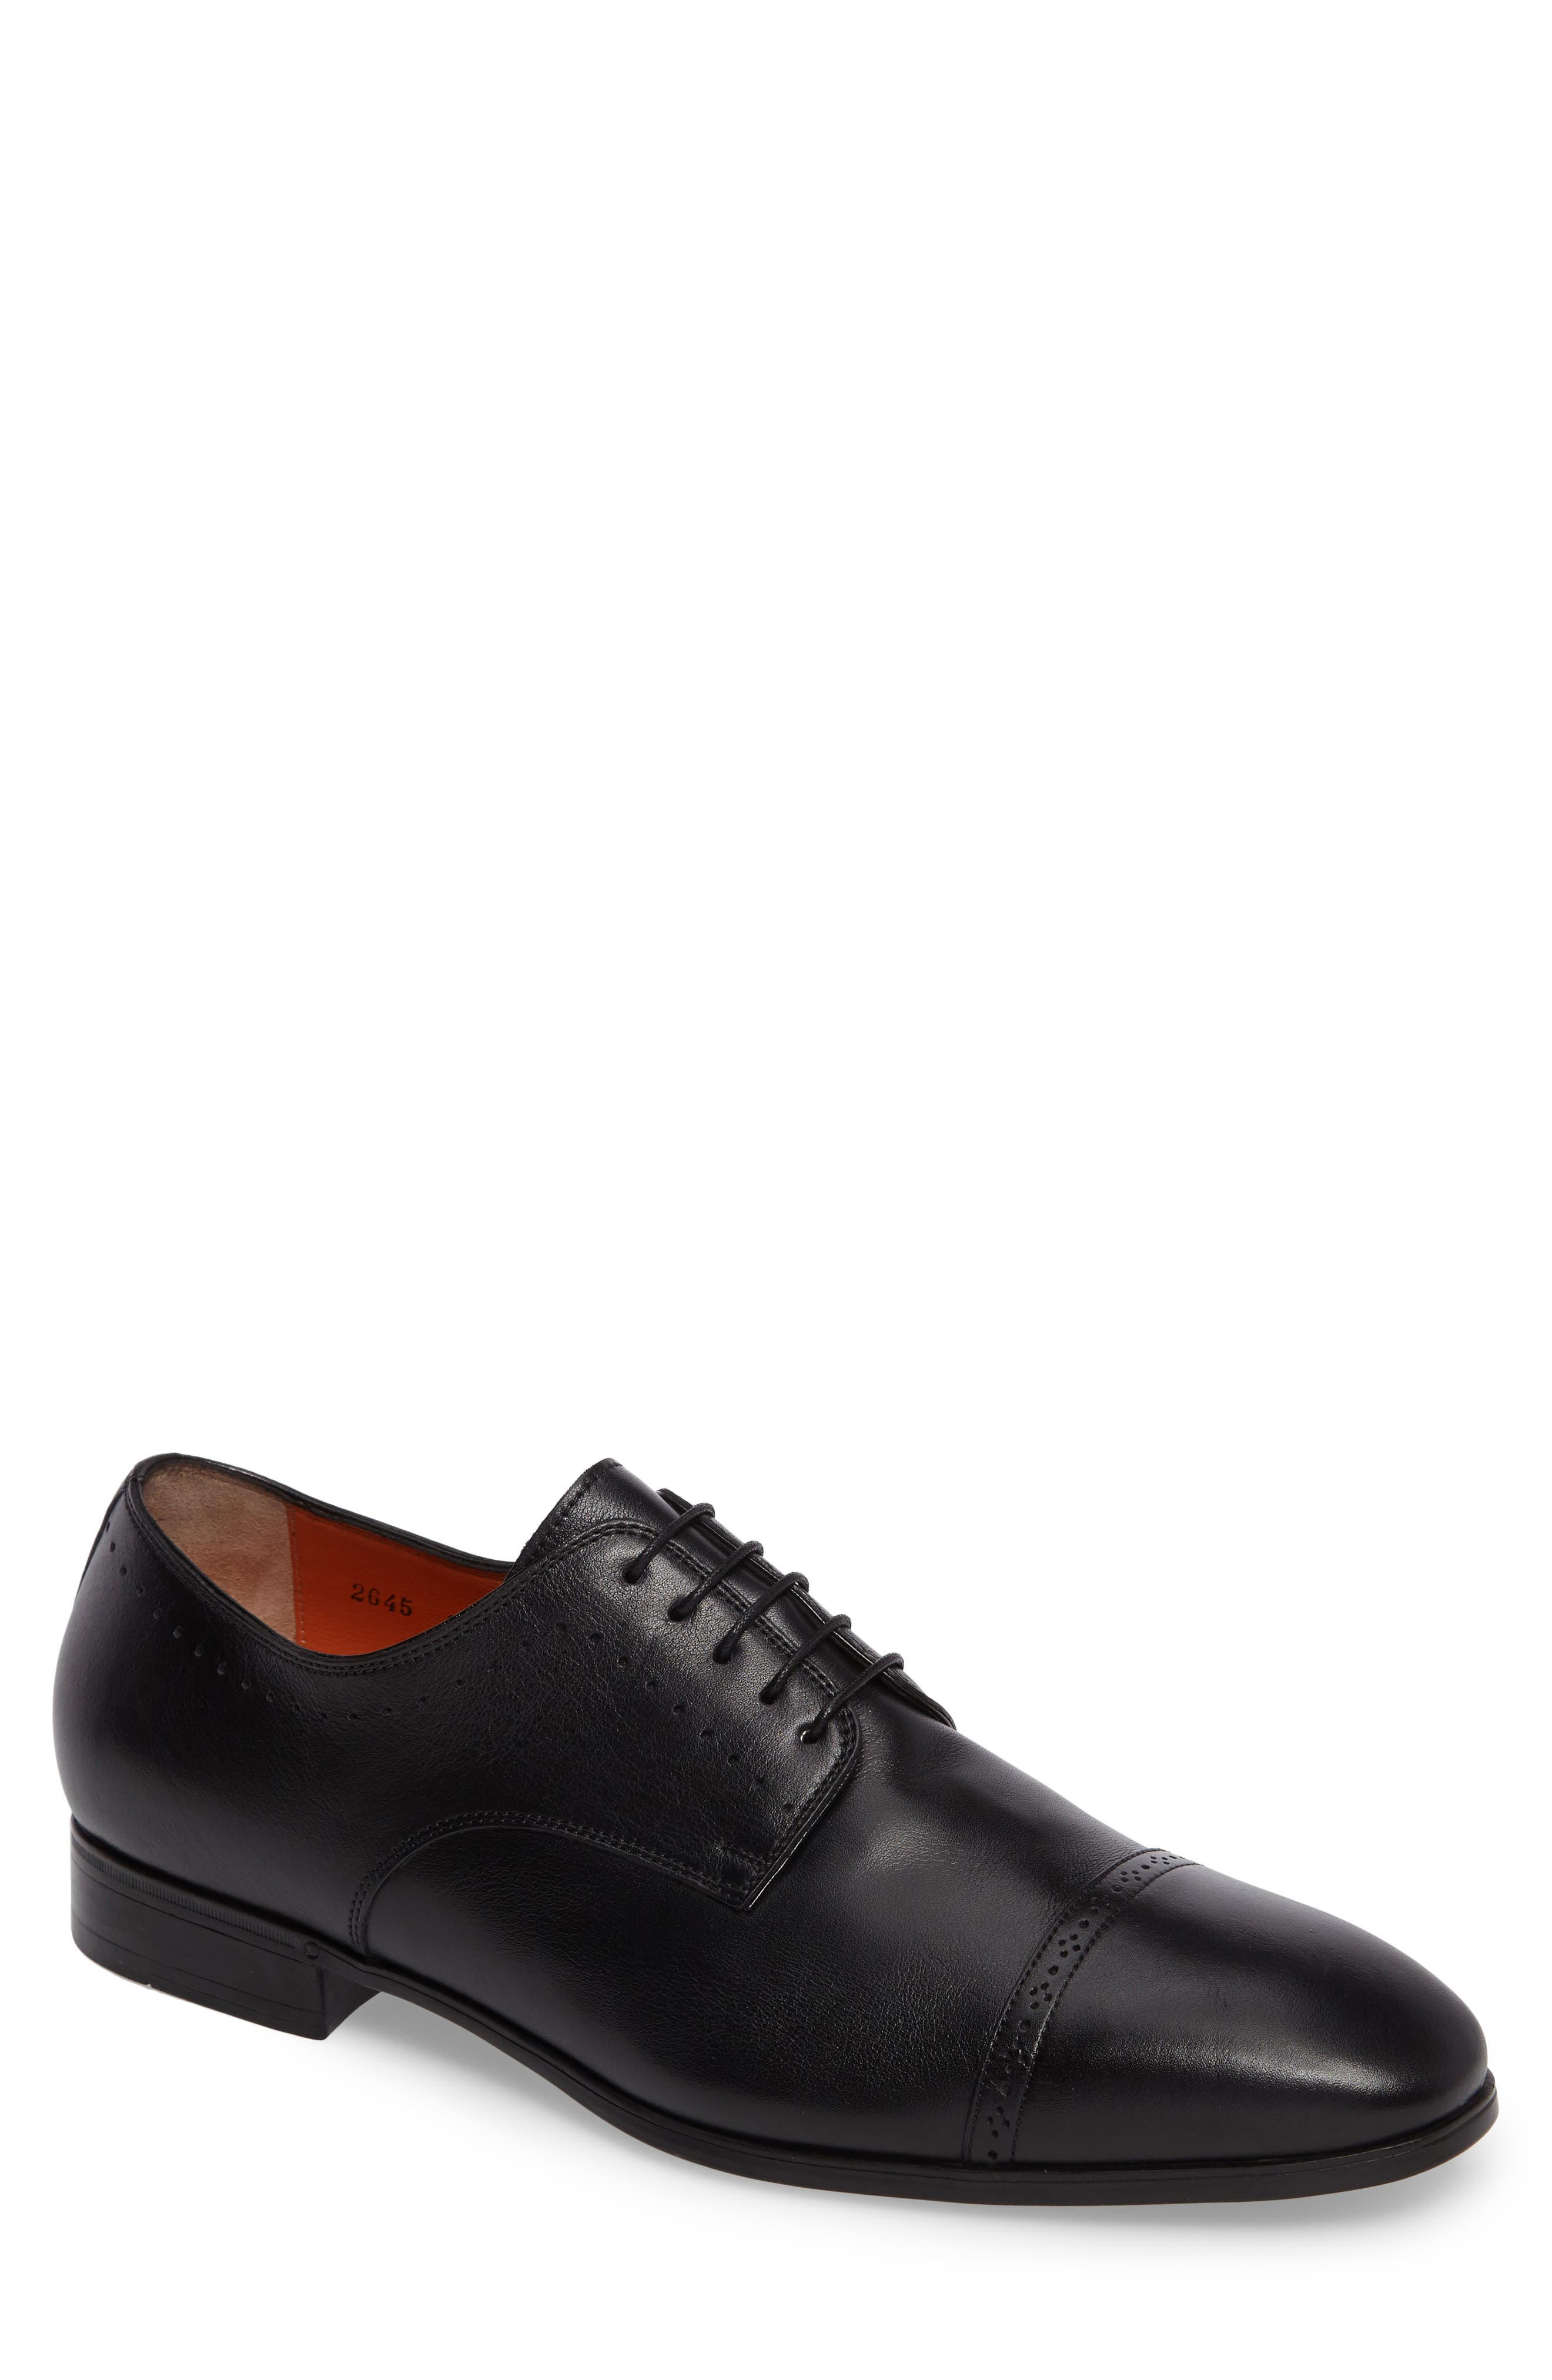 SANTONI, Gareth Cap Toe Derby, Main thumbnail 1, color, BLACK LEATHER